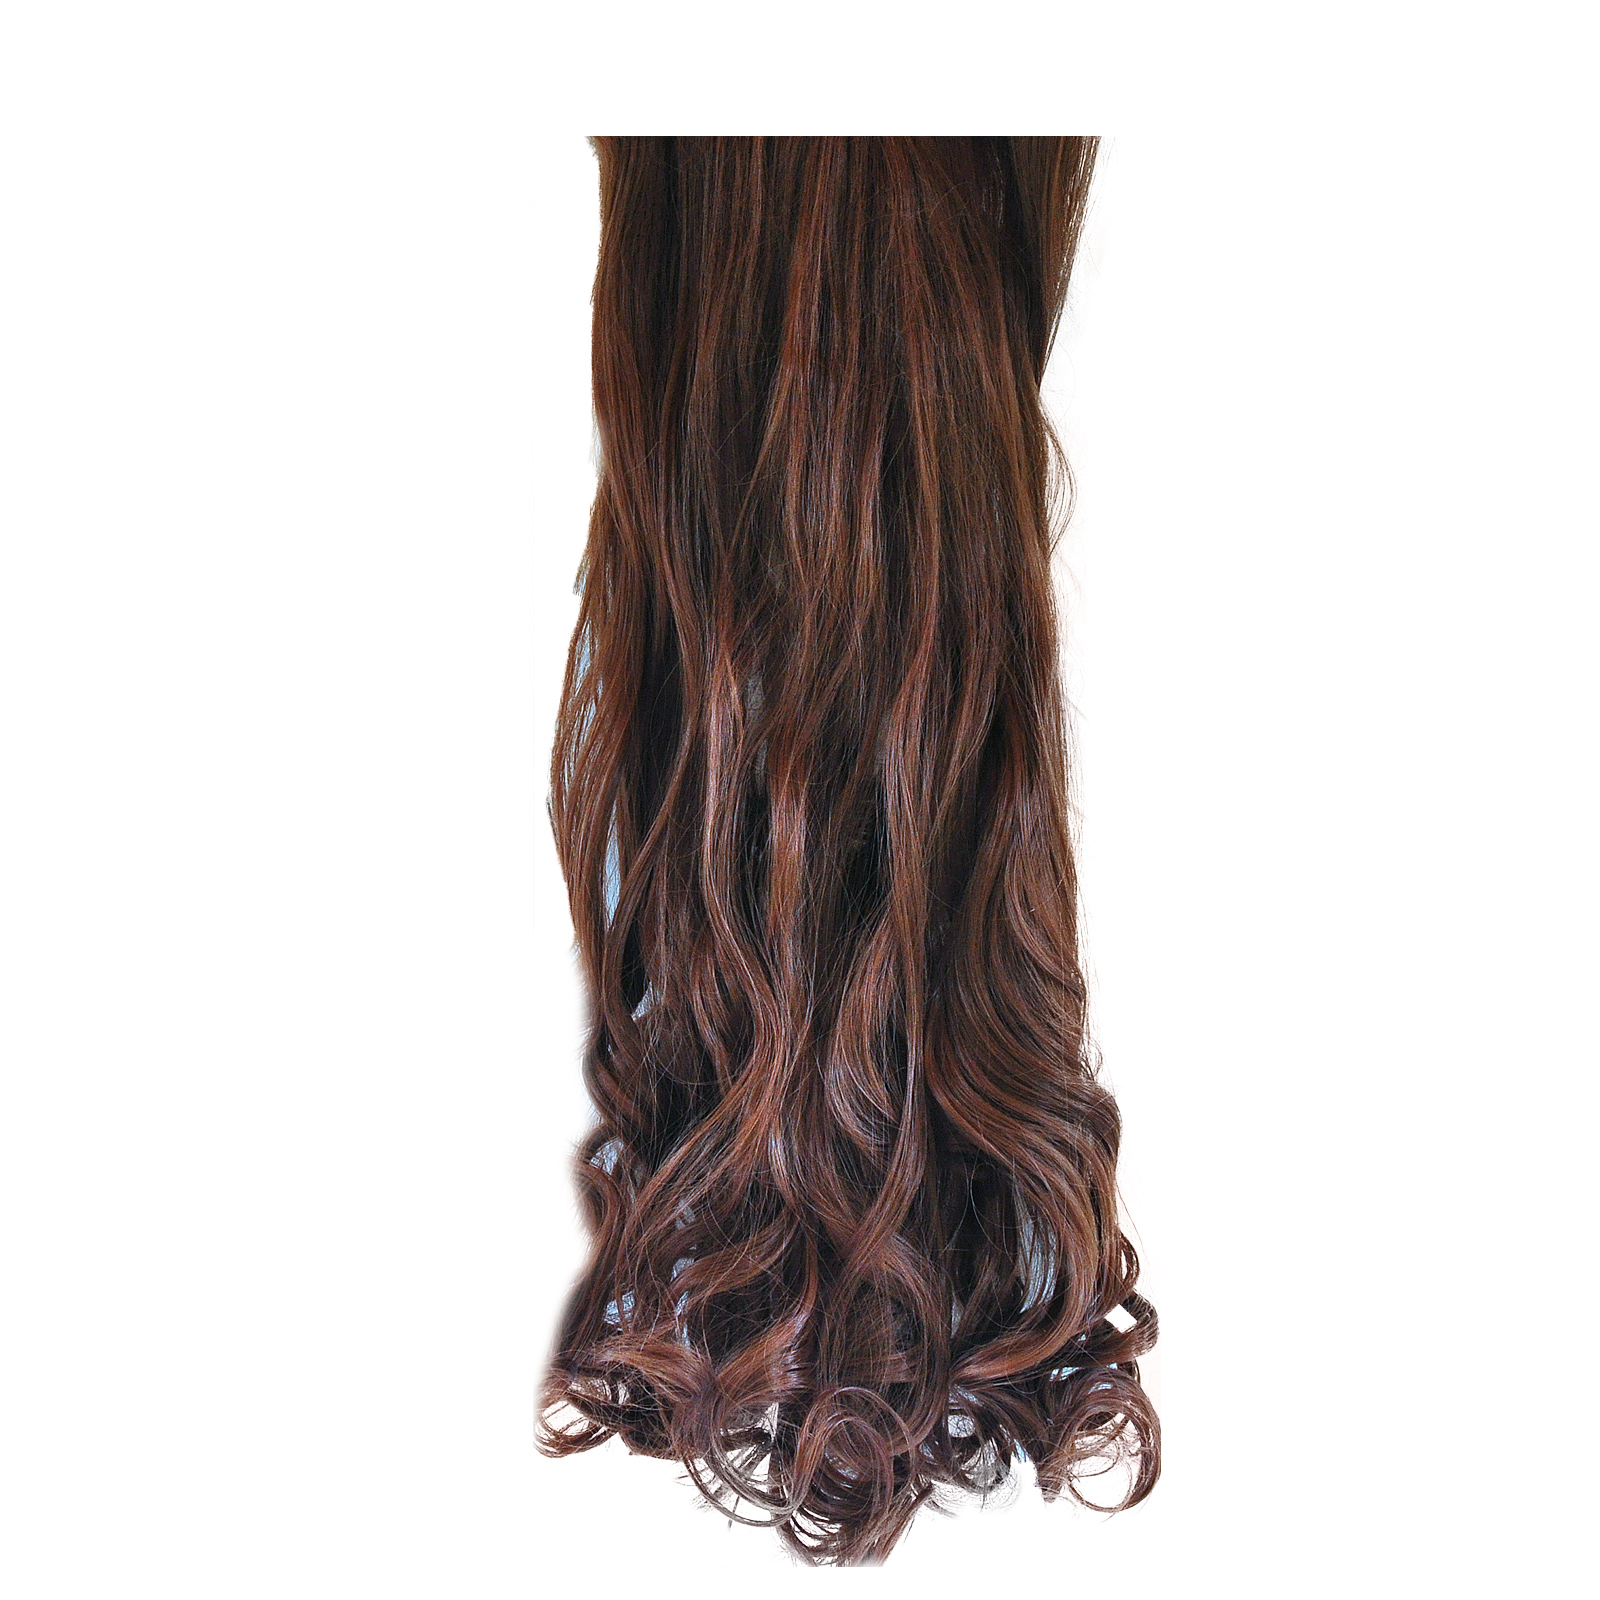 Product for curly hair - Hair Extensions : Mince His Words